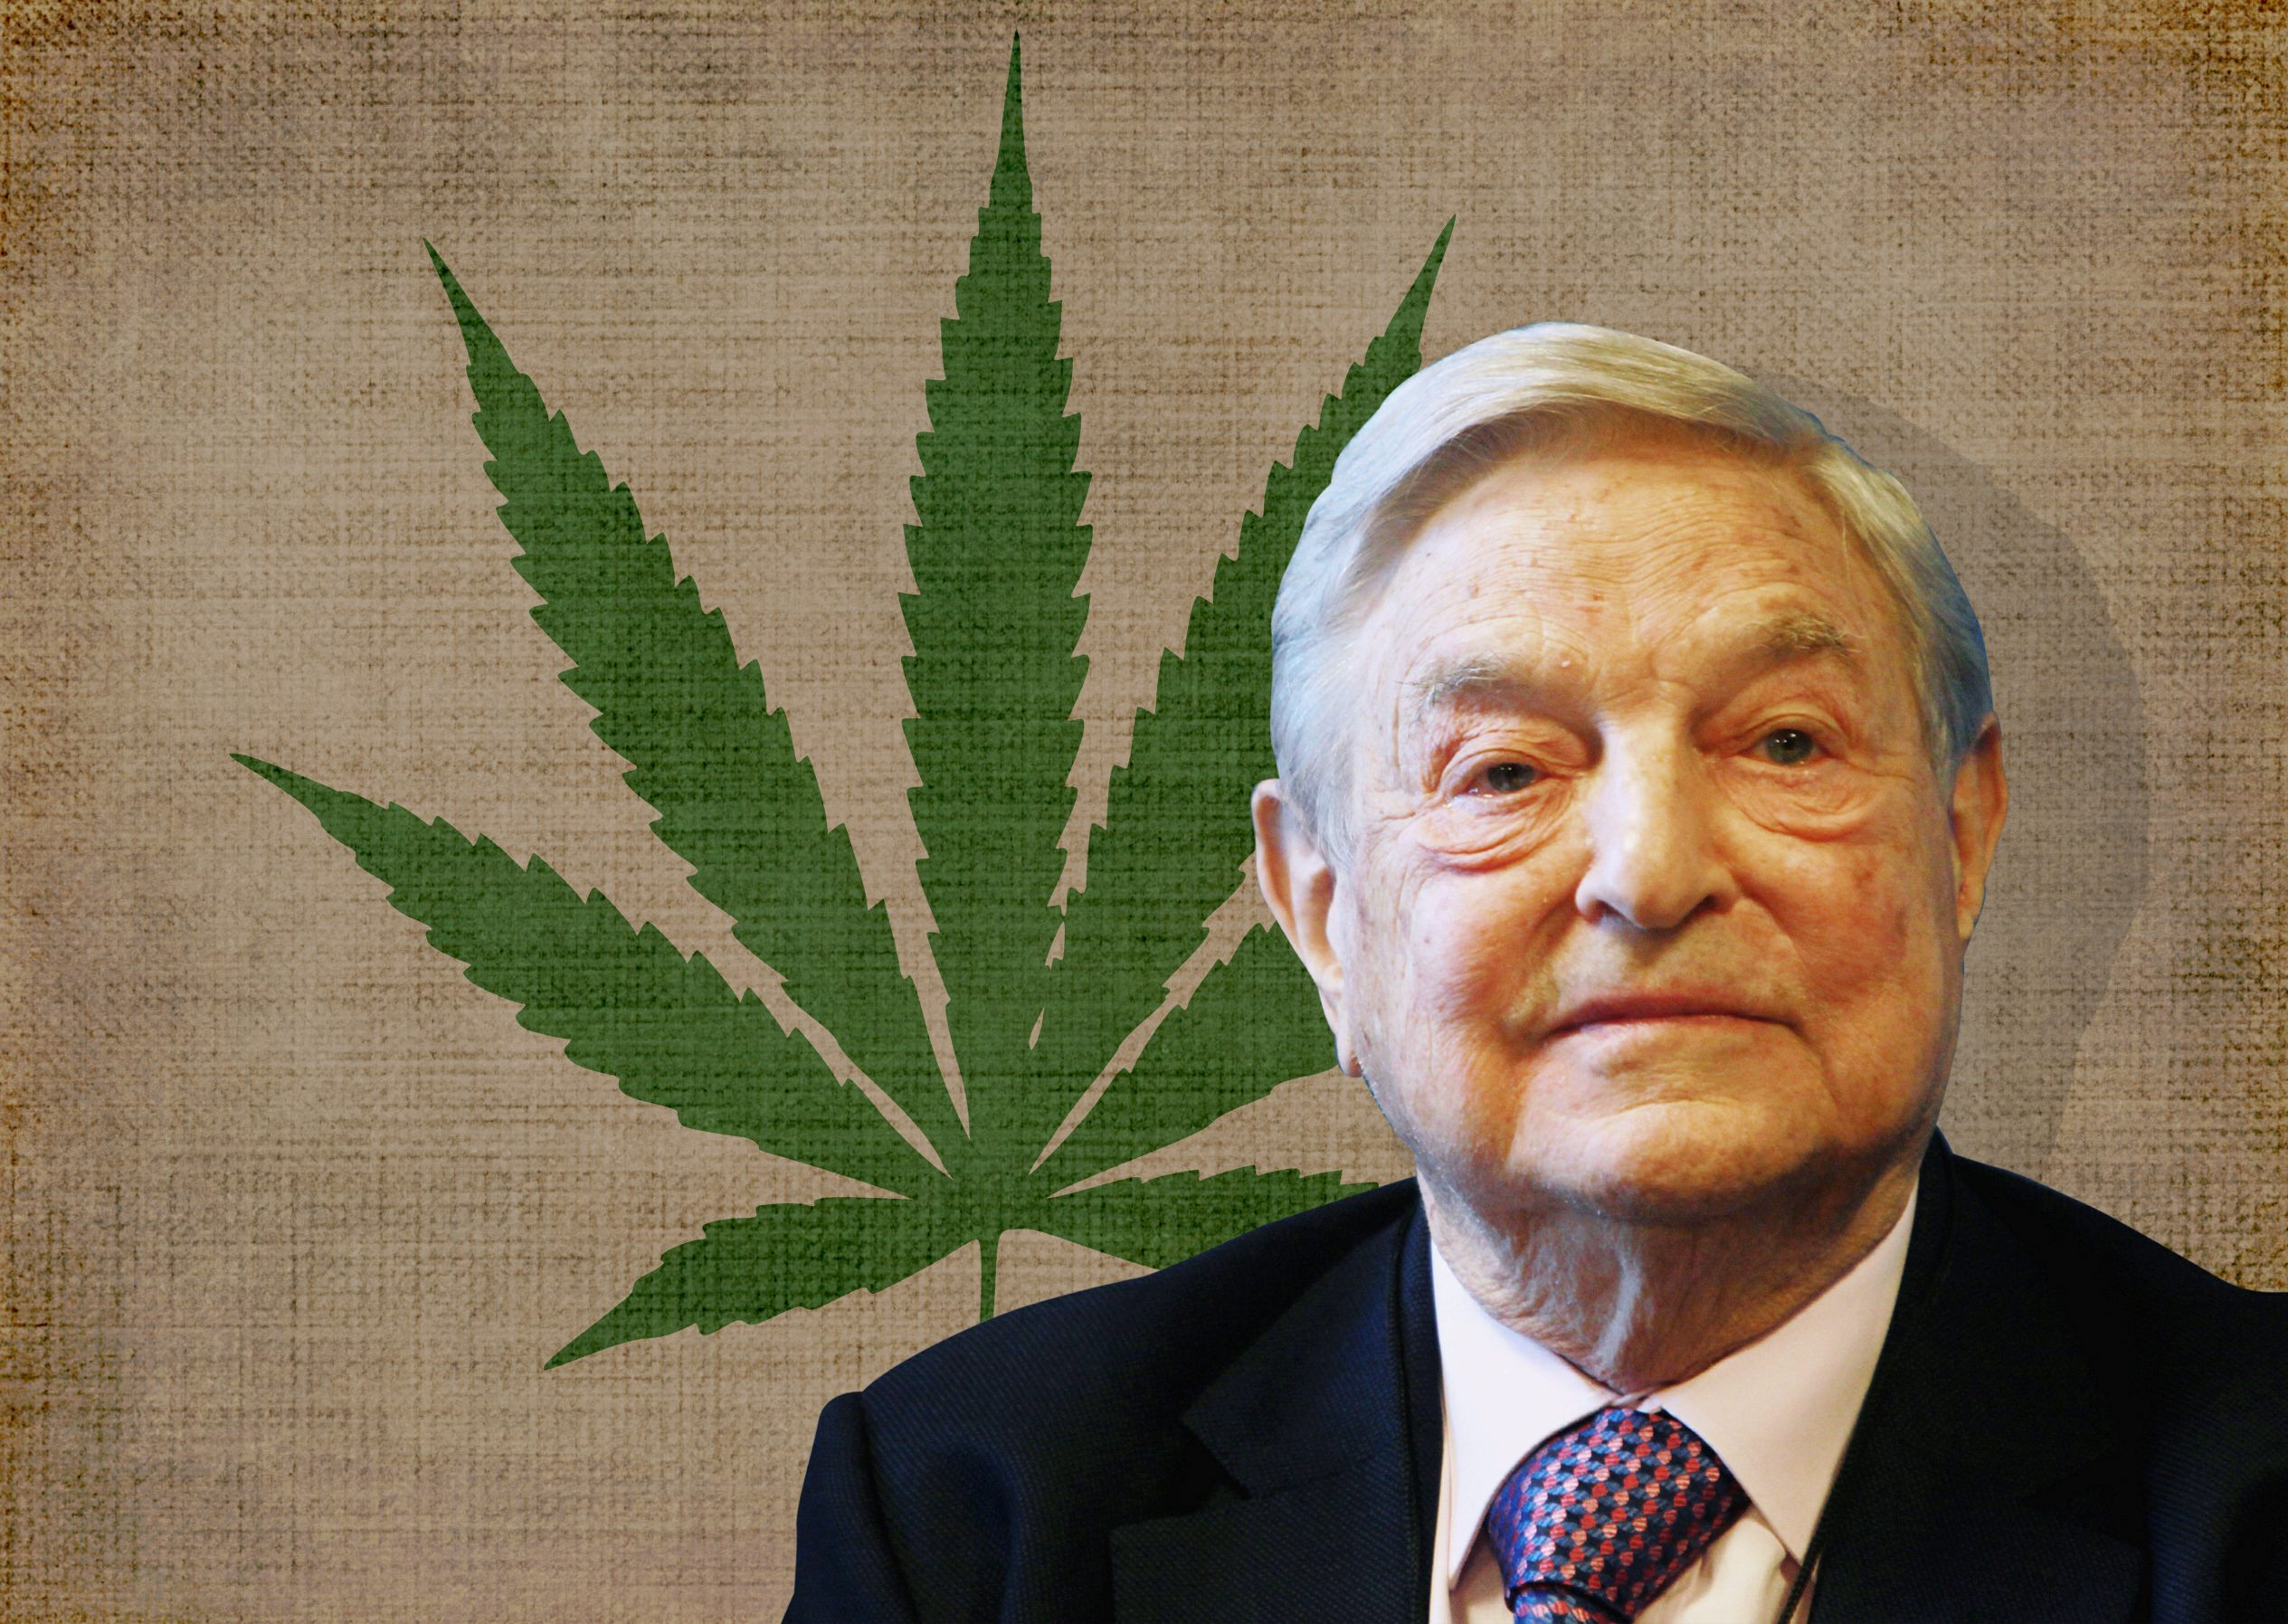 https://i1.wp.com/media.washtimes.com.s3.amazonaws.com/media/image/2014/04/02/4_2_2014_pot-soros-weed8201.jpg